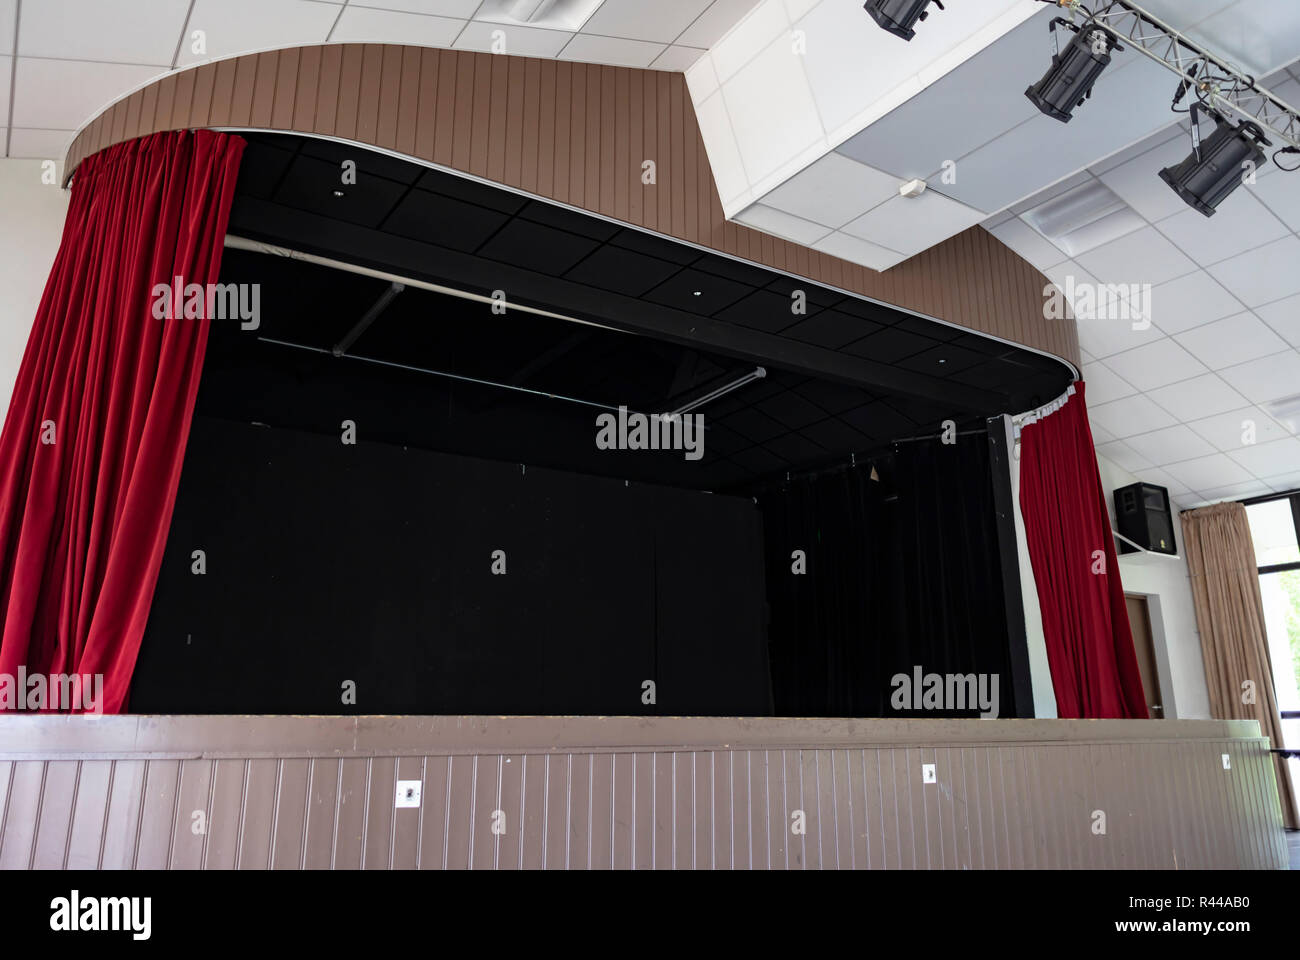 Wide shot of an indoor black stage with red curtains and spot lights hung on the ceiling, surrounded by wooden panels. - Stock Image